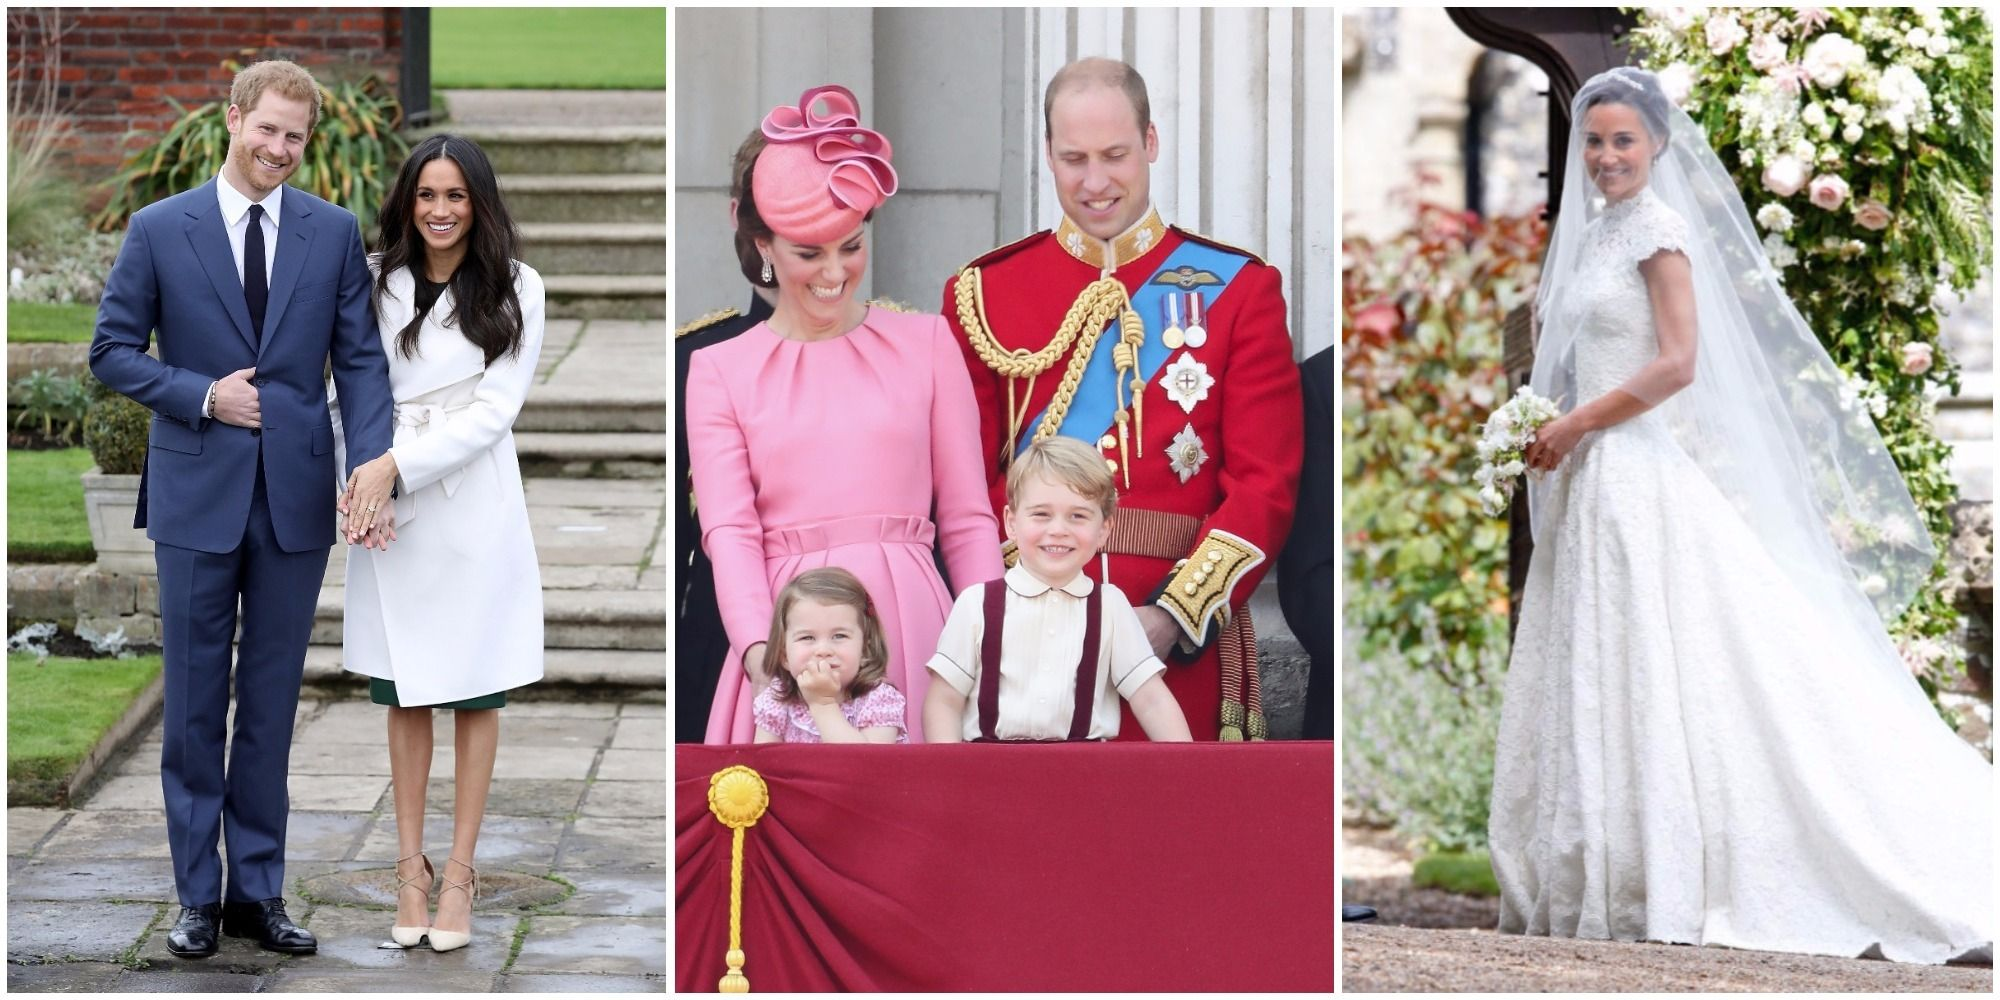 14 Of The Most Memorable Royal Family Moments Of 2017